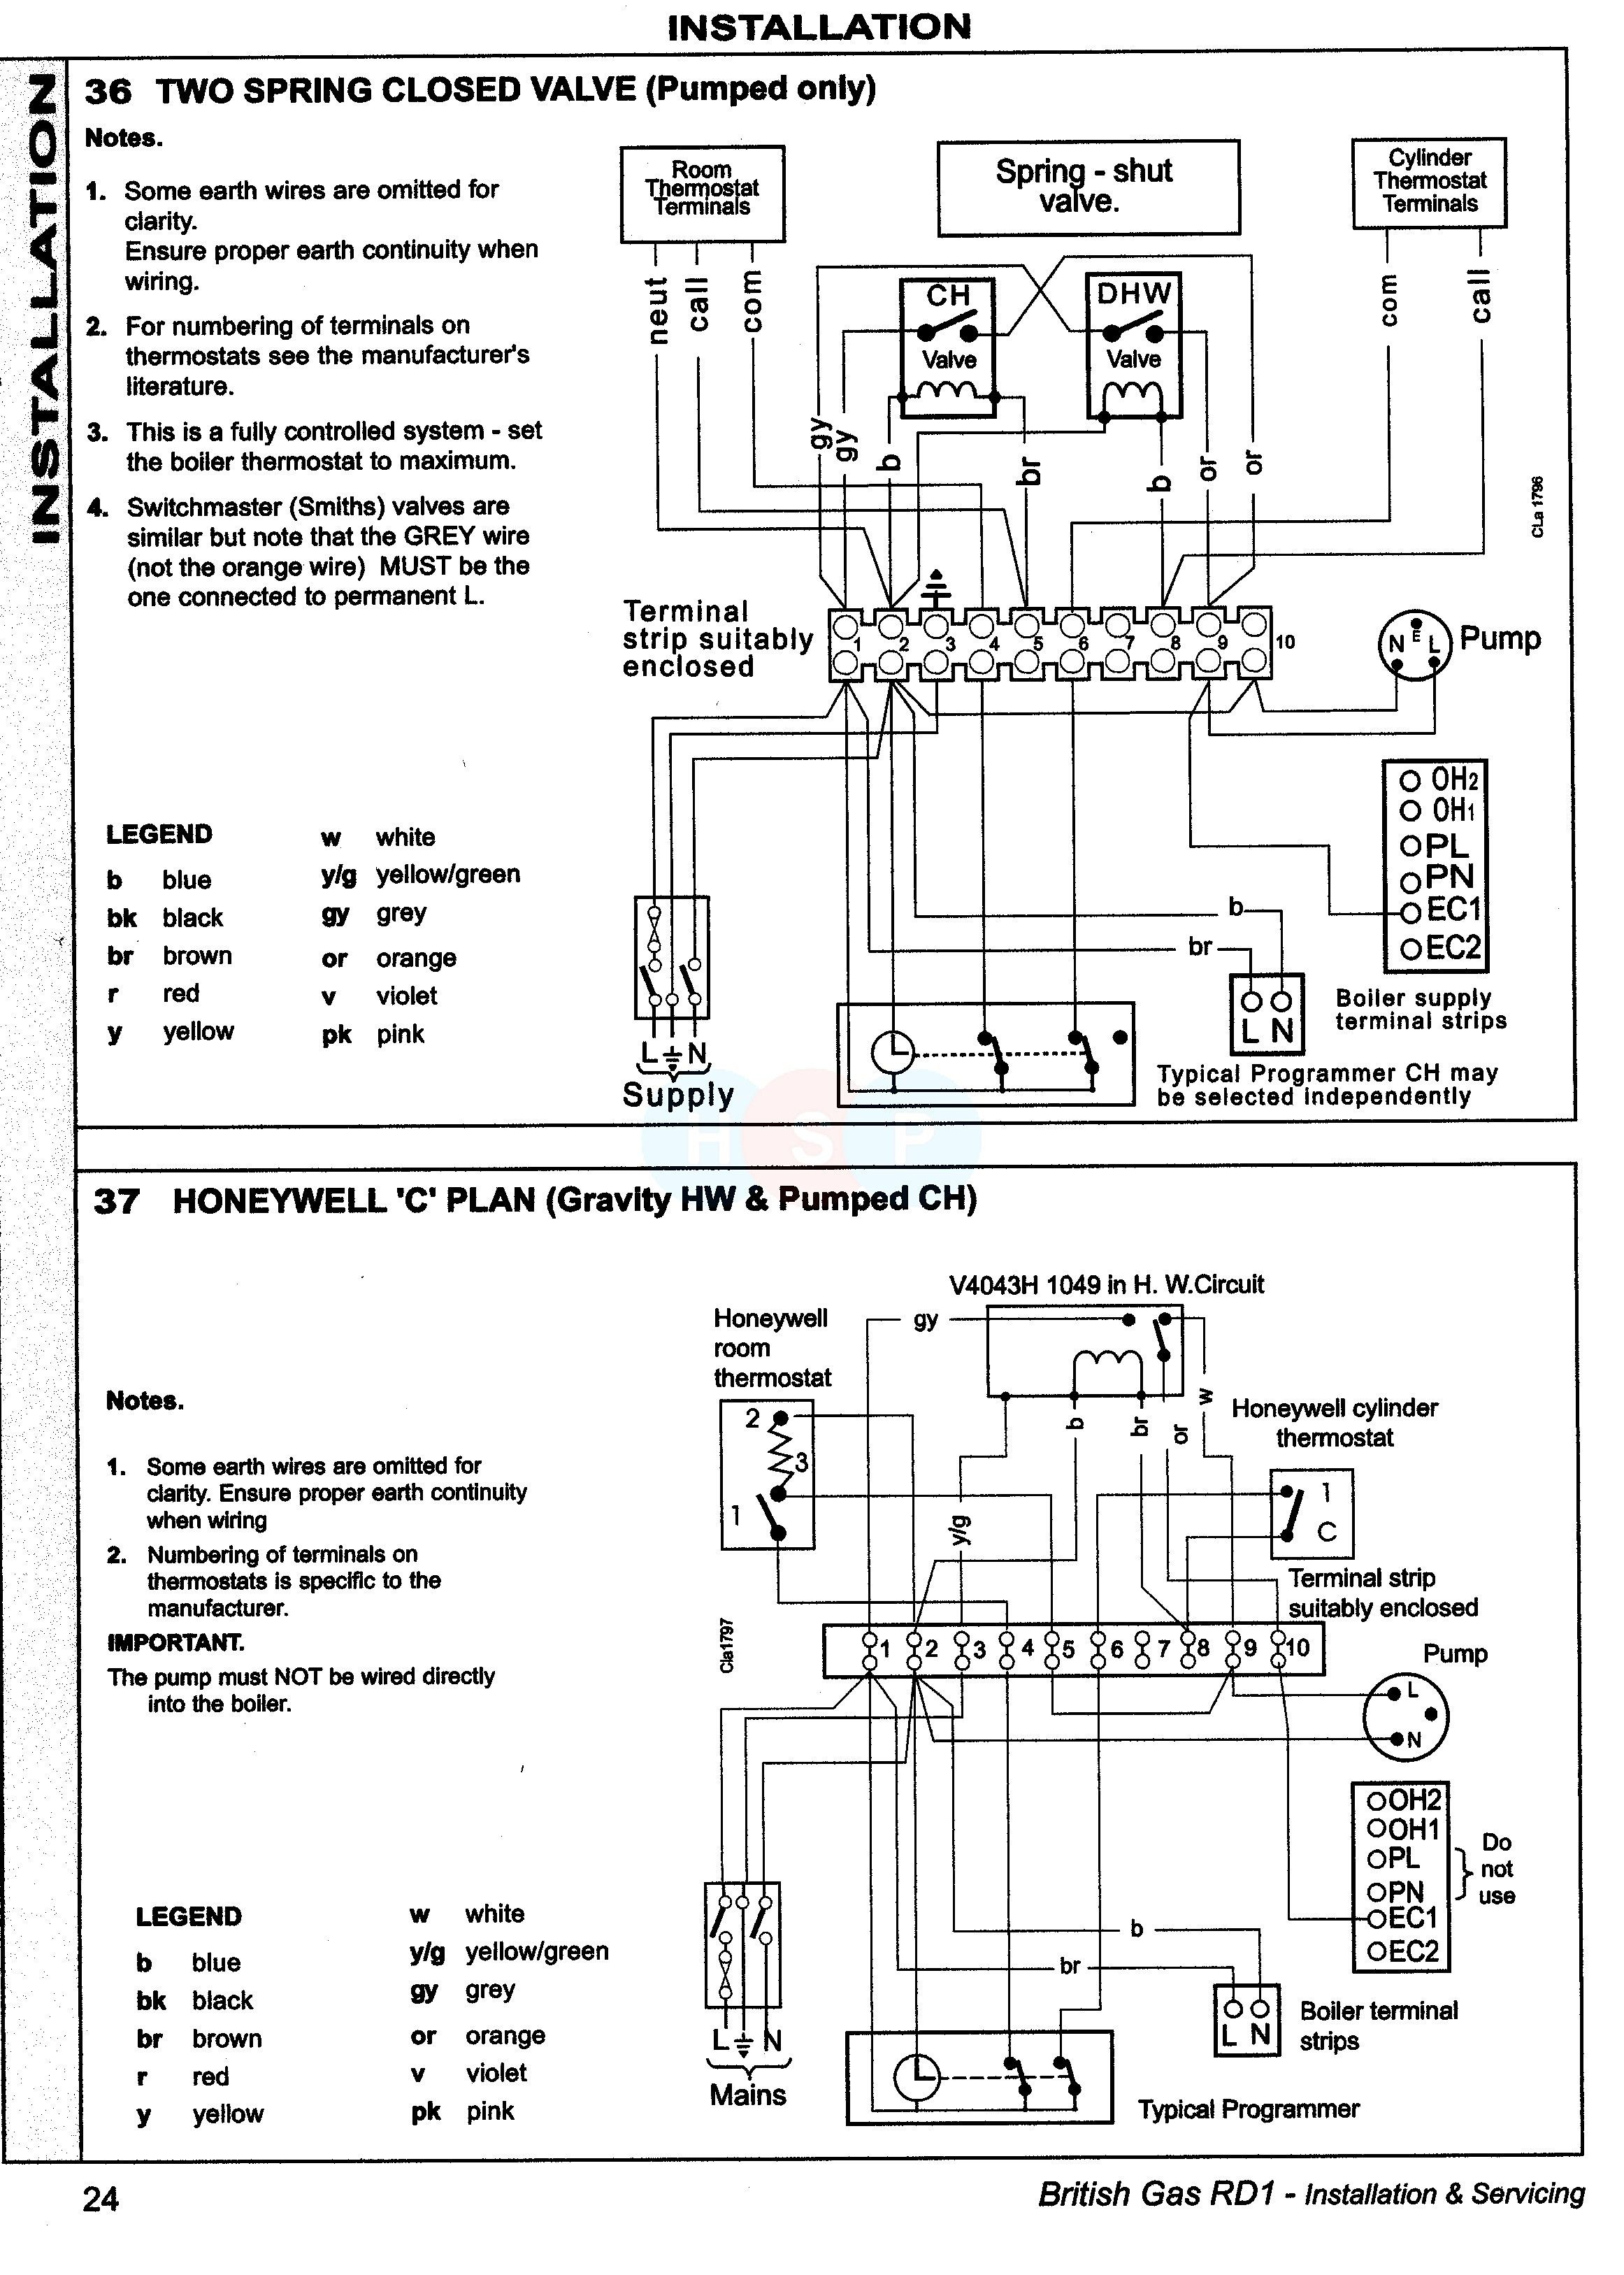 lovely wiring diagram for honeywell s plan #diagrams #digramssample  #diagramimages #wiringdiagramsample #